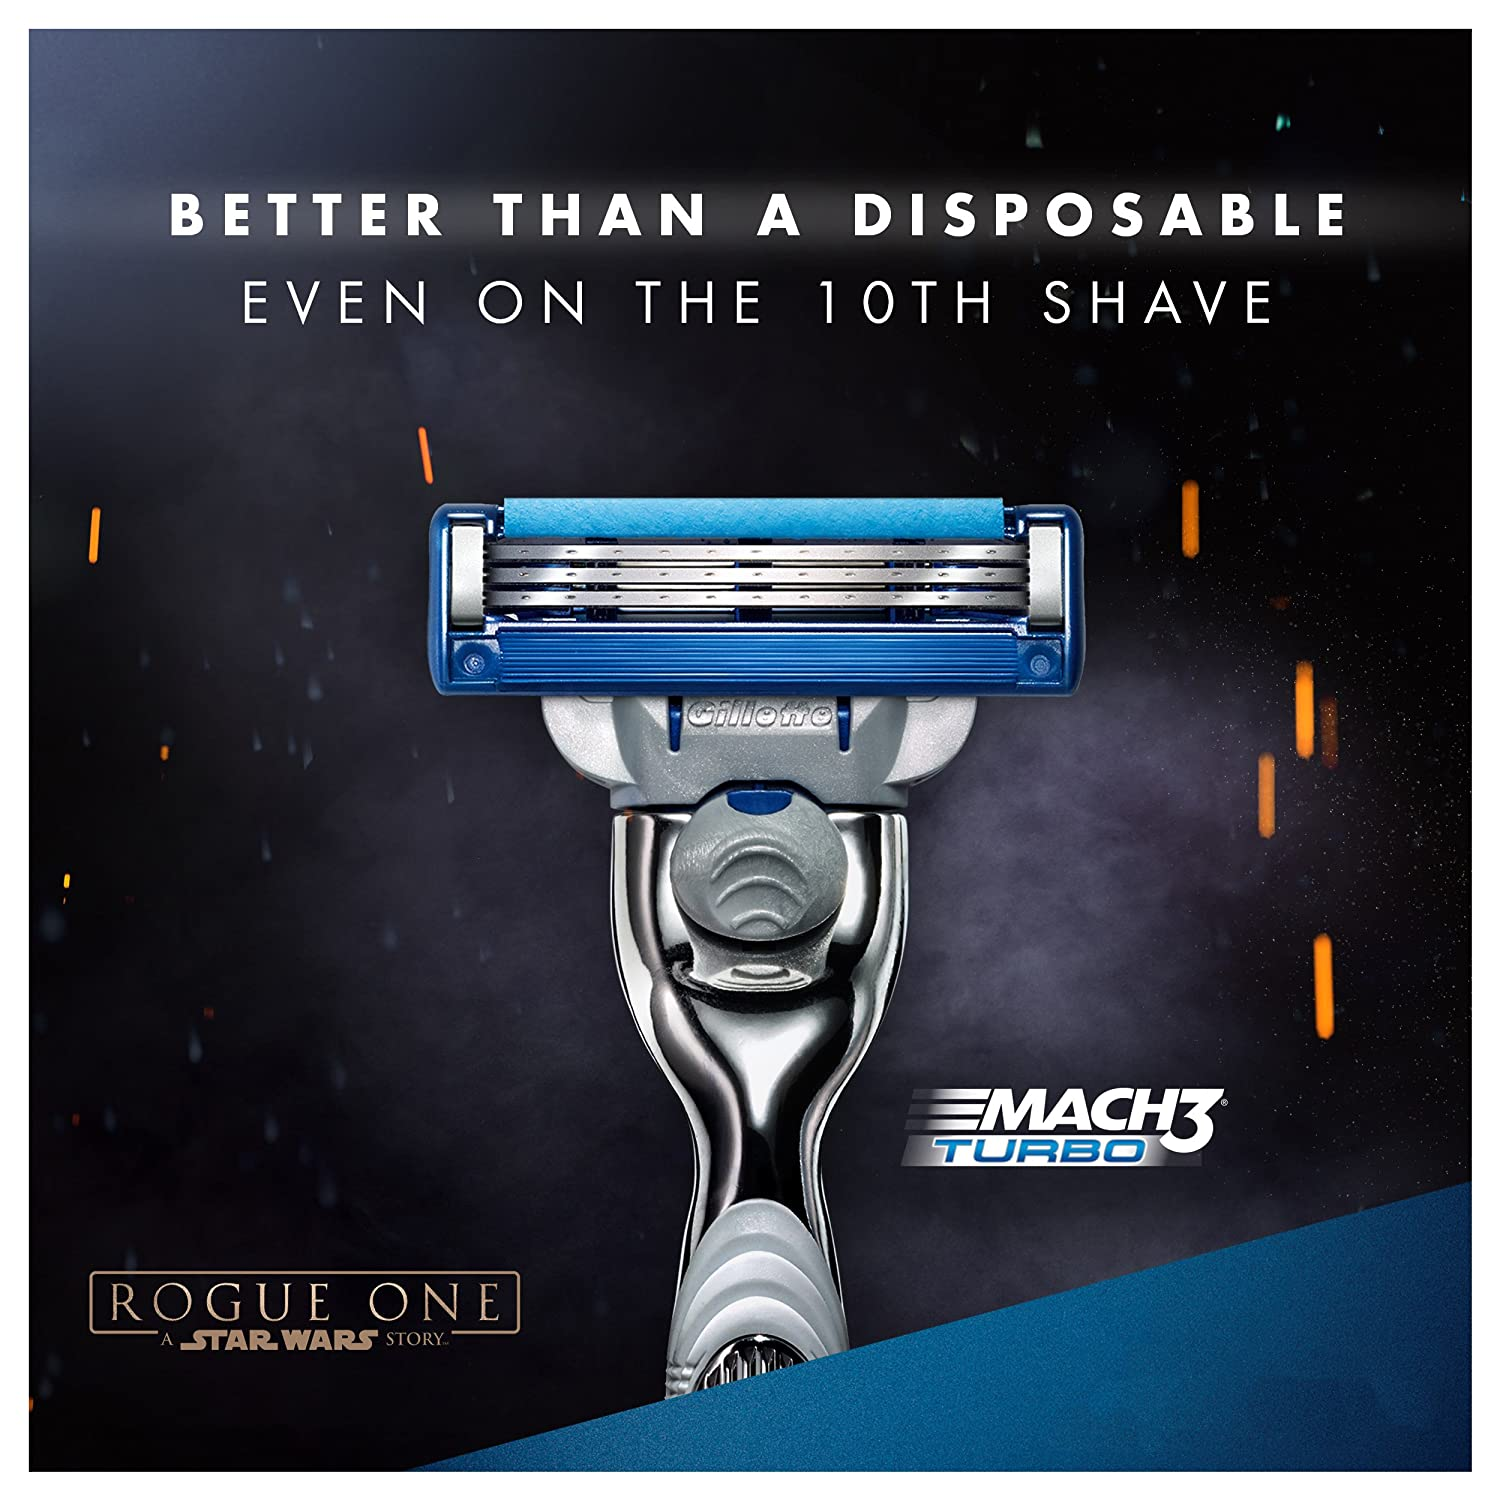 Which one is better than a razor